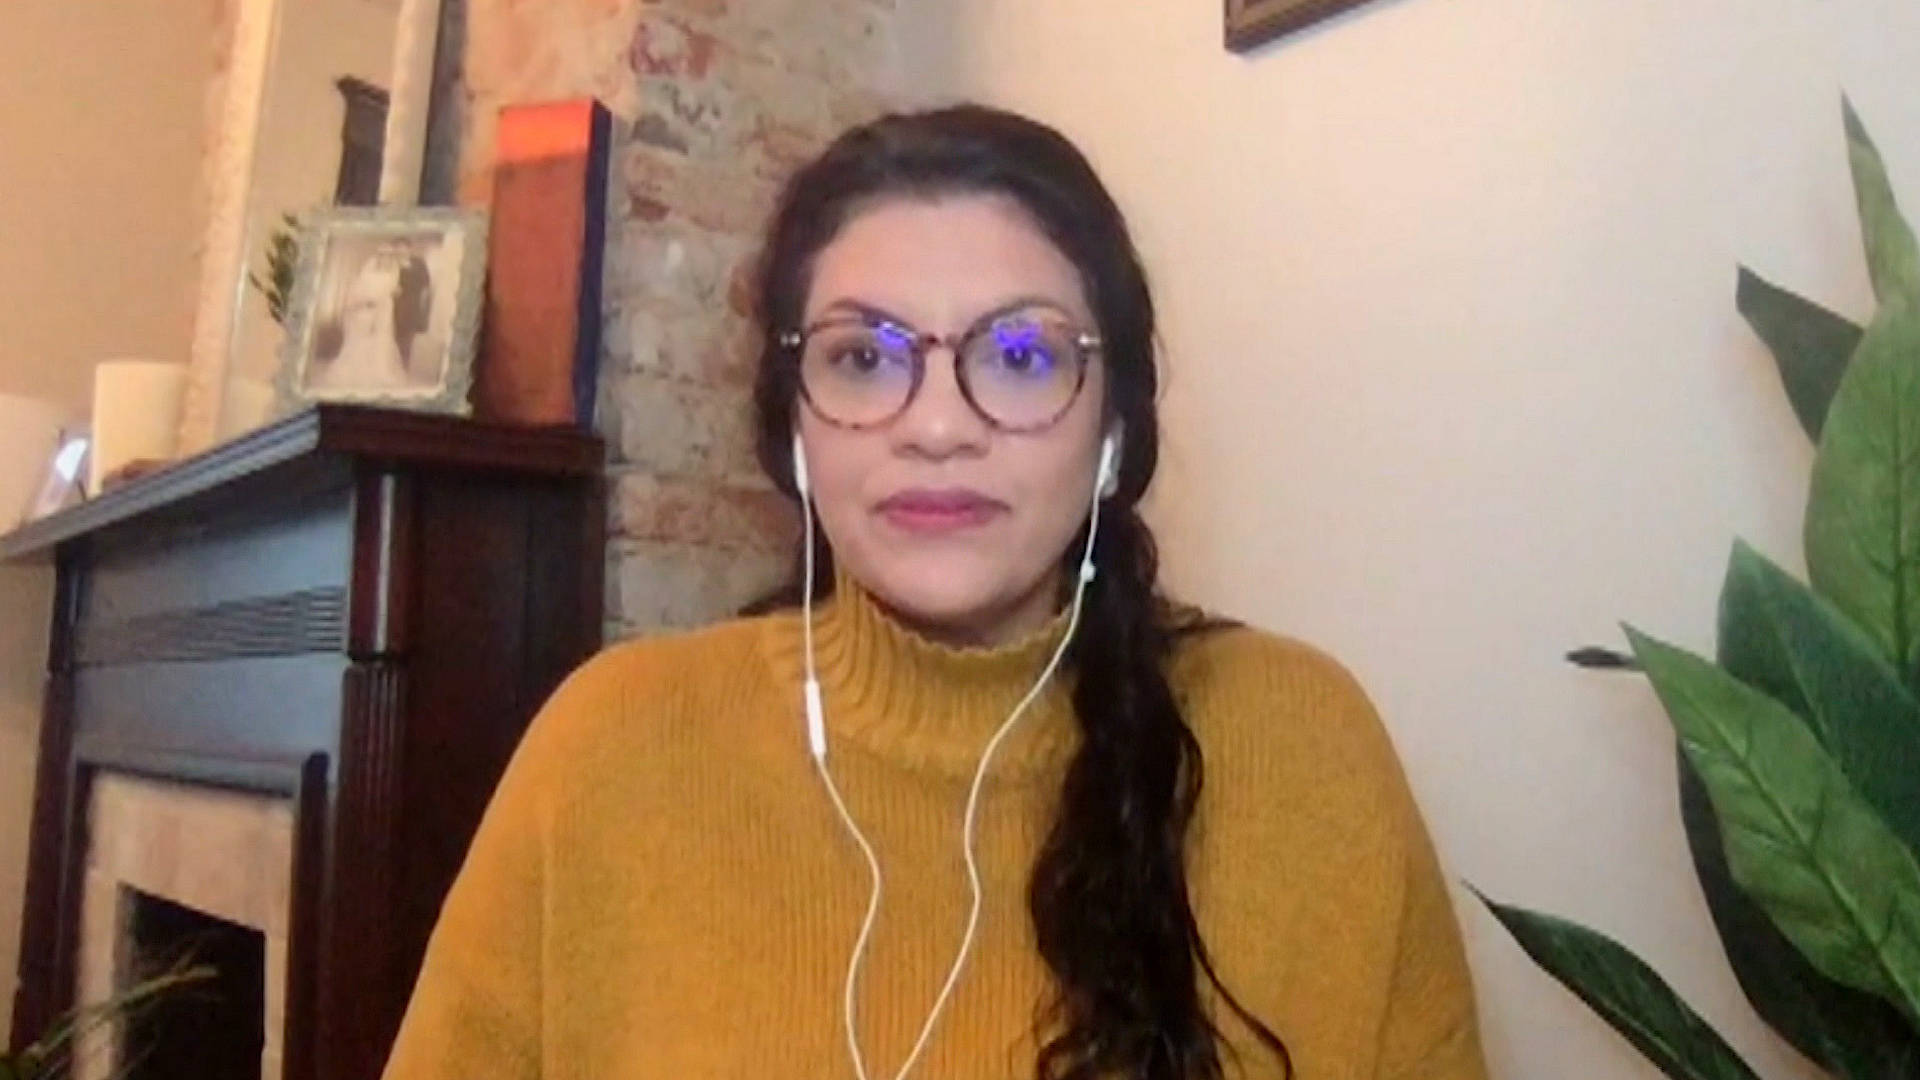 Read more about the article Rep. Rashida Tlaib: I Fear Trump Will Lead More Violent Attacks; He Must Be Held to Account